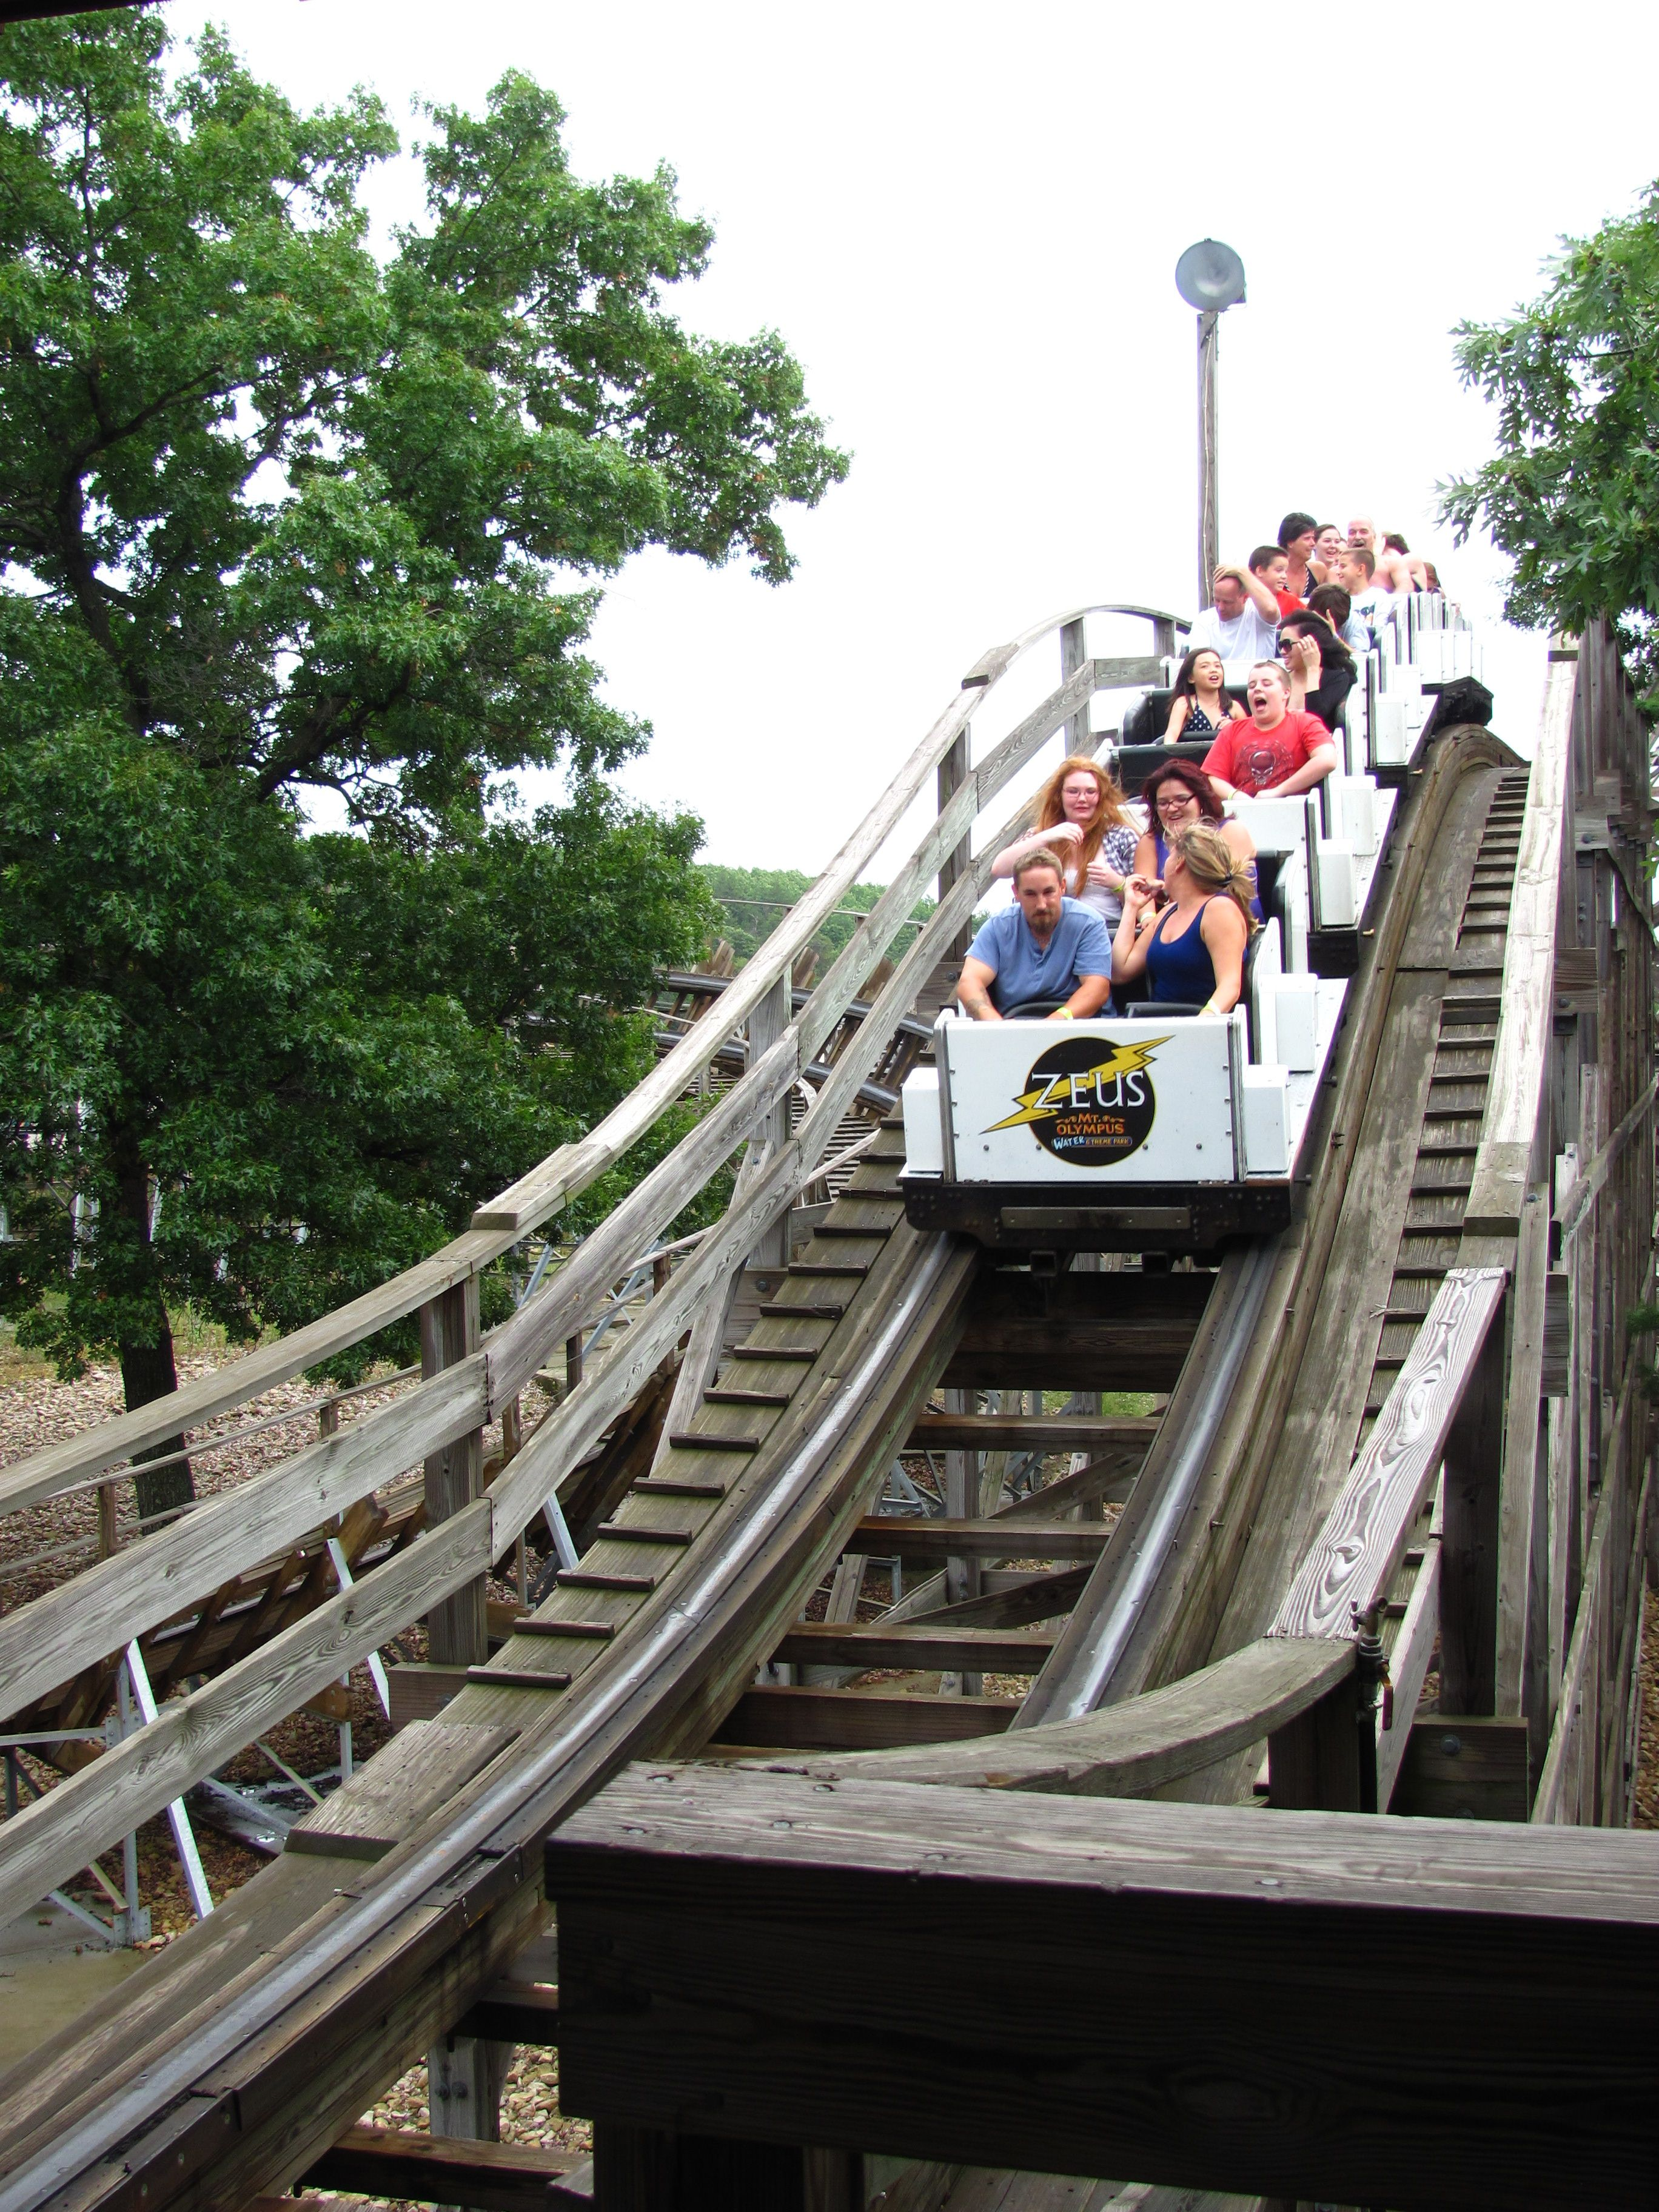 Zeus Mt Olympus Water Theme Park In Wisconsin Dells - Pedal powered skycycle rollercoaster japan amazing